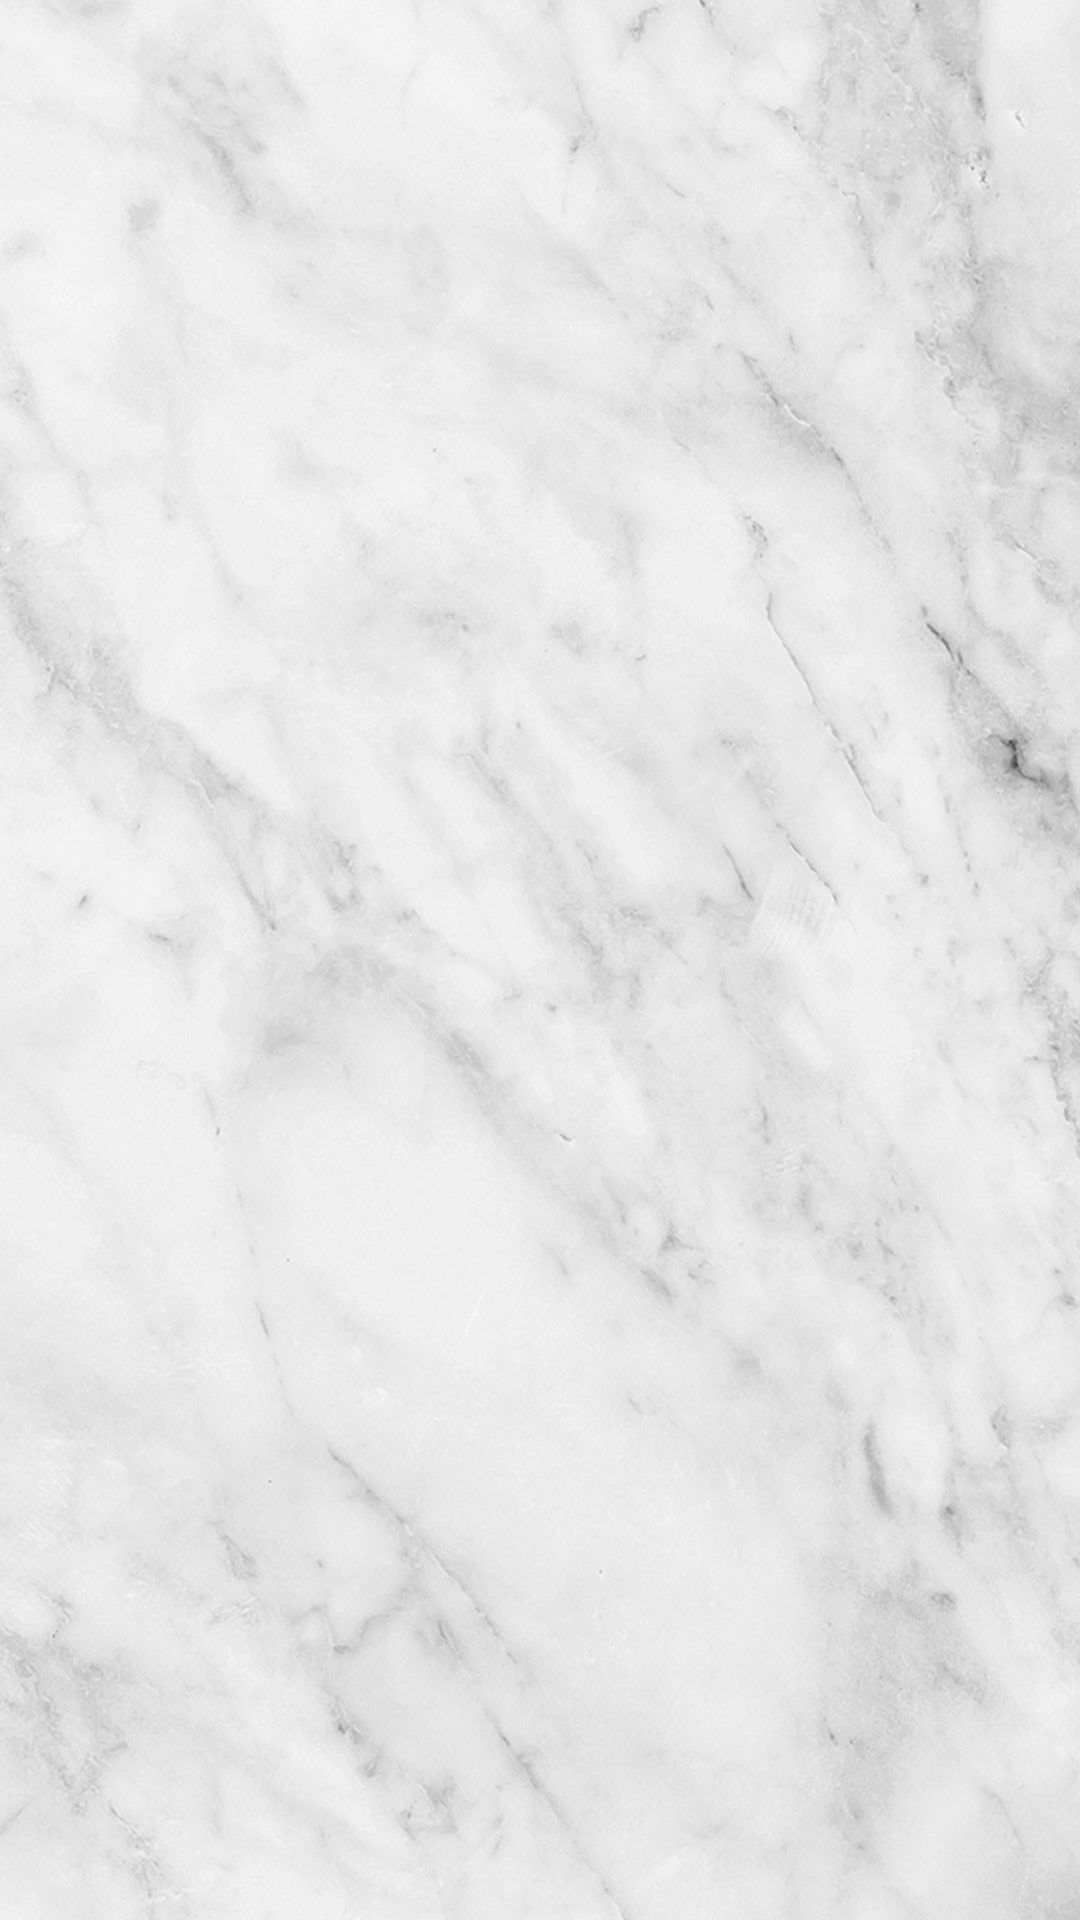 Pin By Forum Damani On New Pos Marble Iphone Wallpaper Cellphone Wallpaper Grey Marble Wallpaper